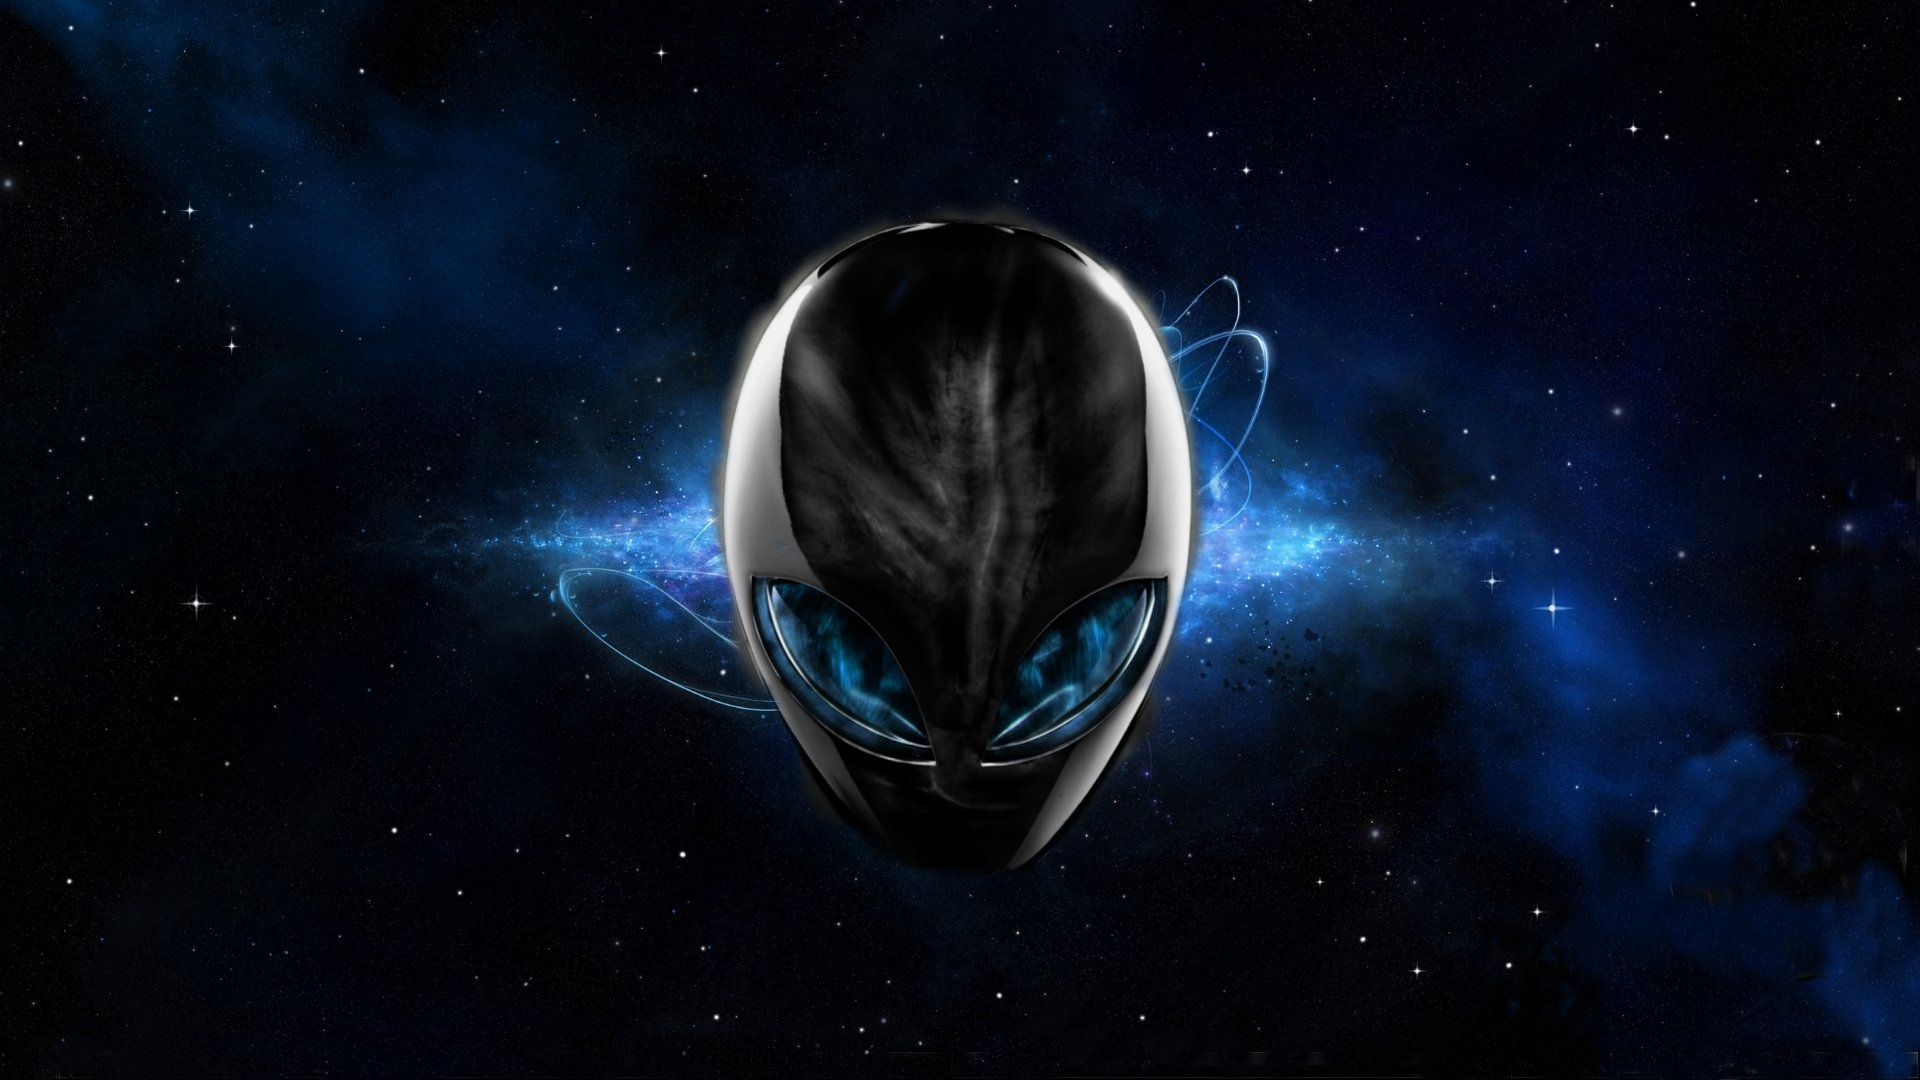 10 Best Alienware Hd Wallpaper 1920X1080 FULL HD 1080p For PC Background